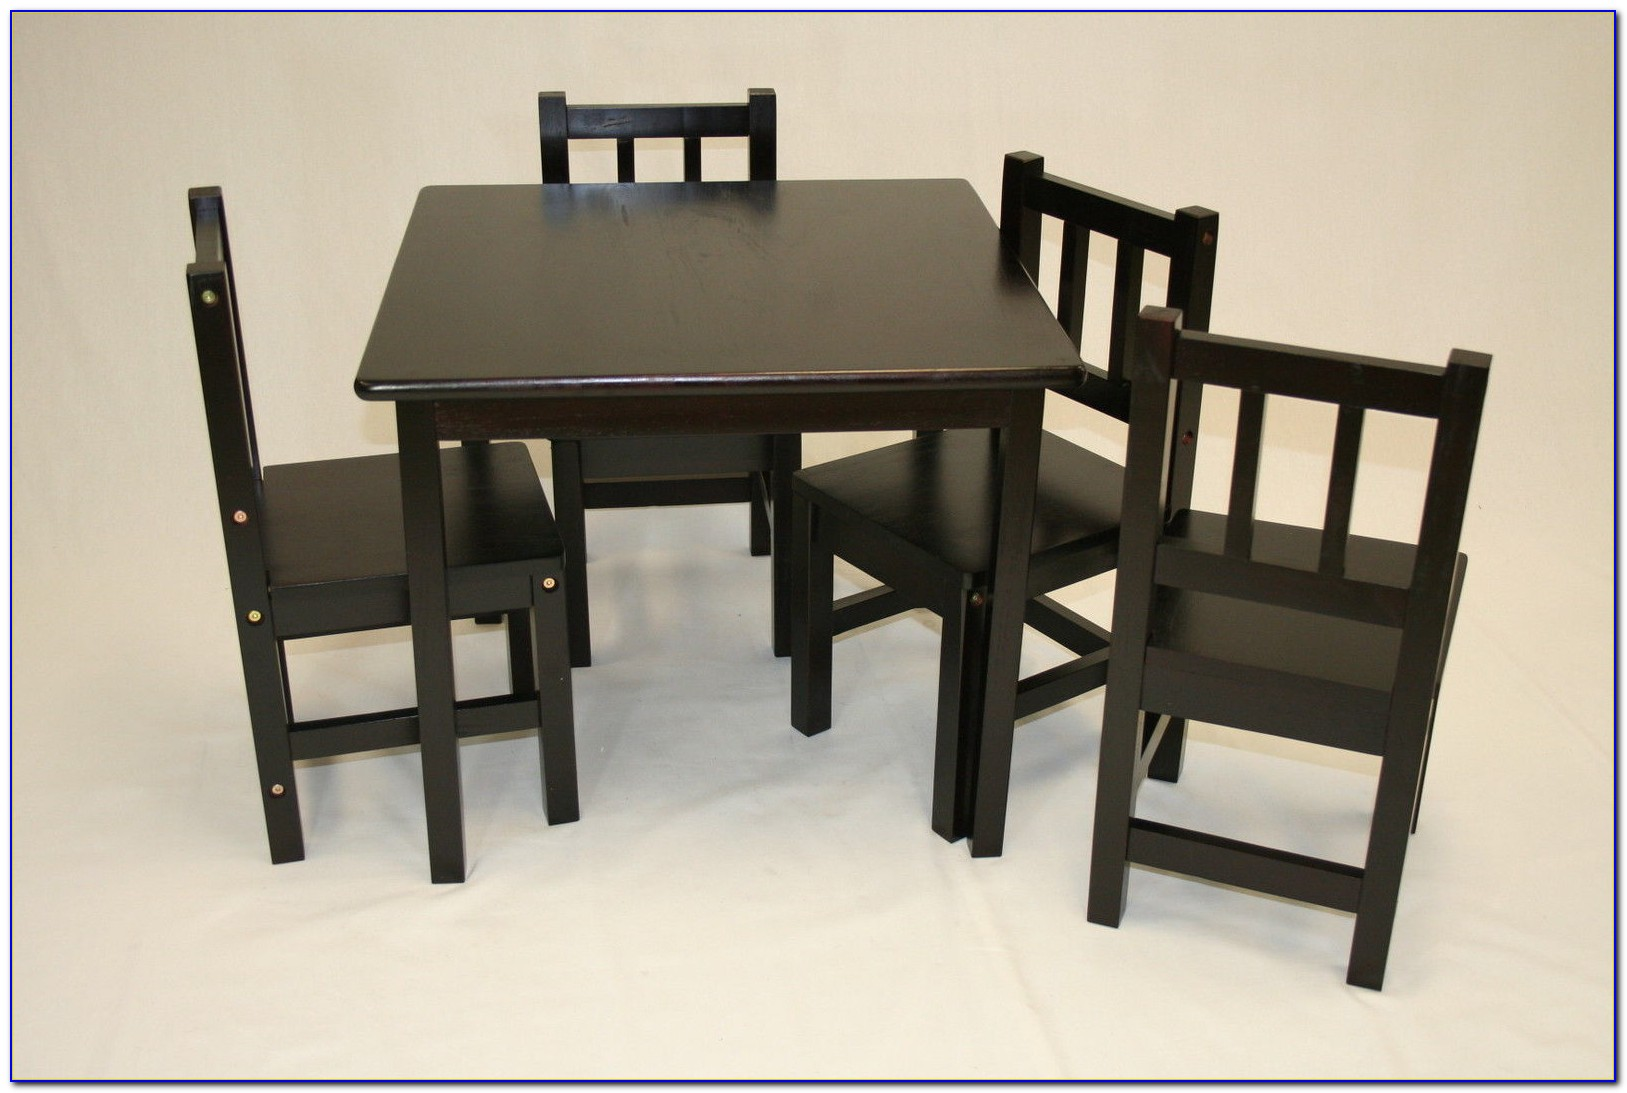 Wood Childrens Table And Chairs